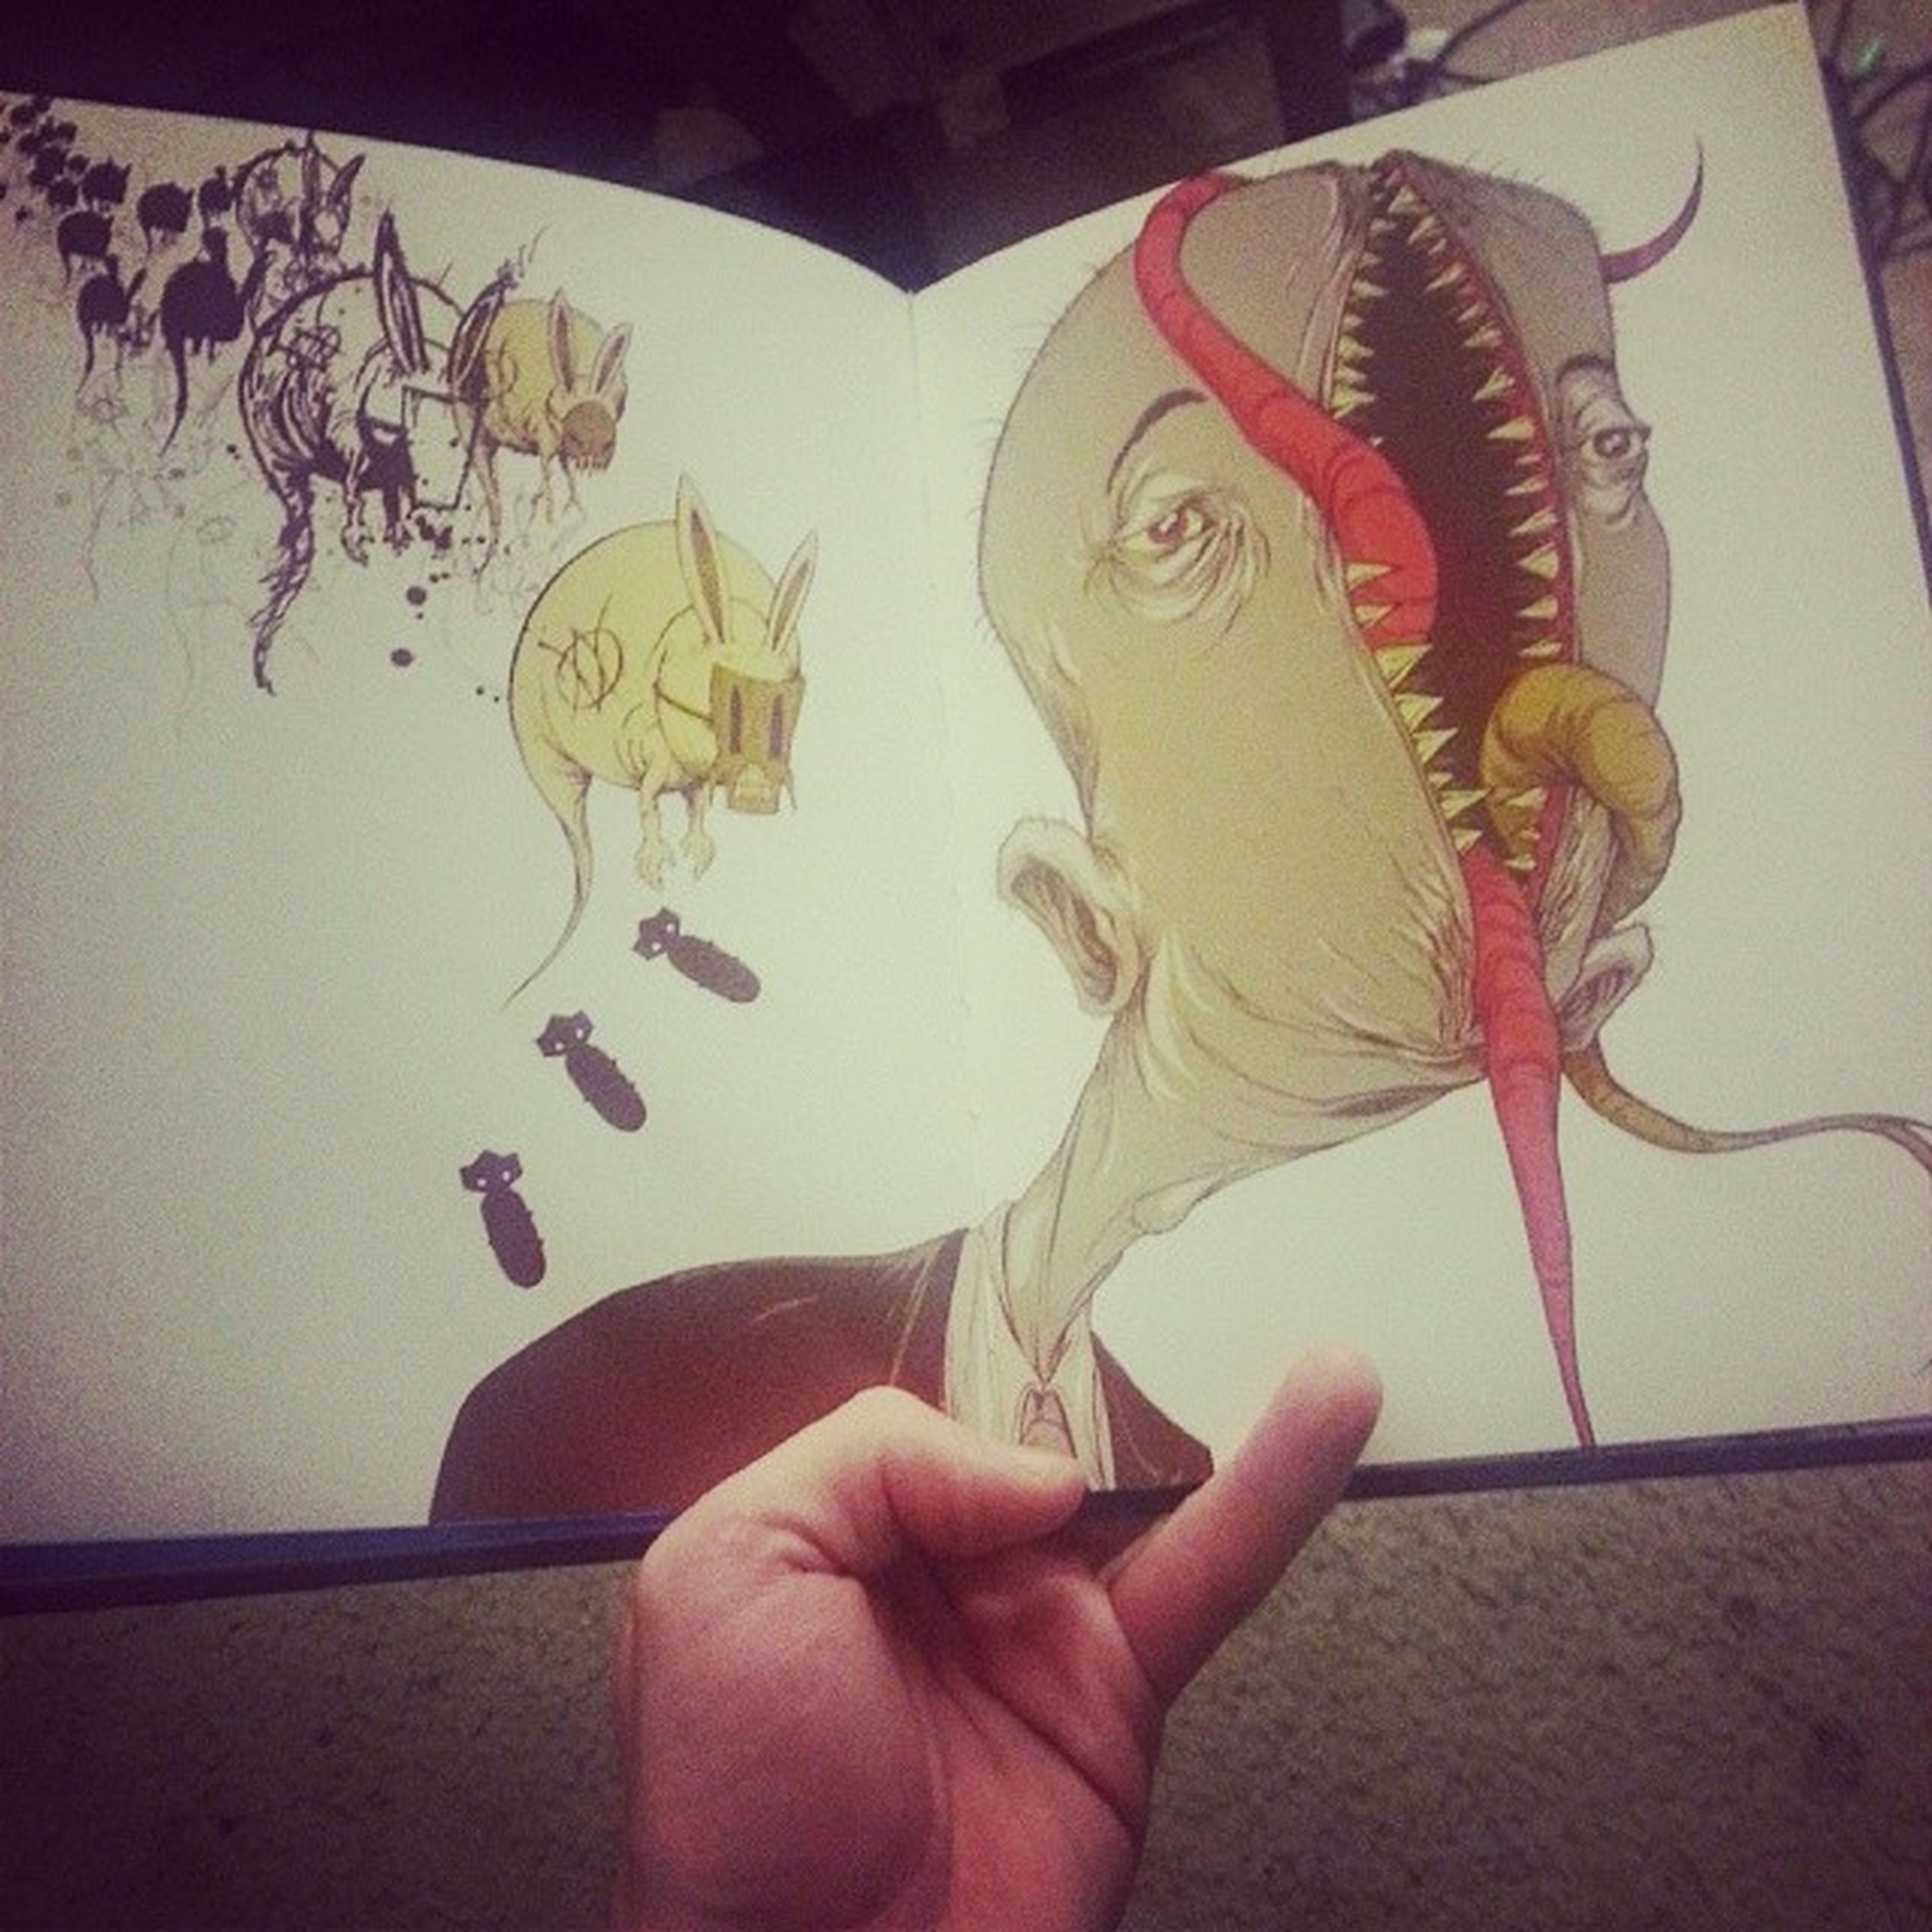 My girlfriend got me the @alexpardee Awfulhomesick book. Best gift ever. Xmas Christmas